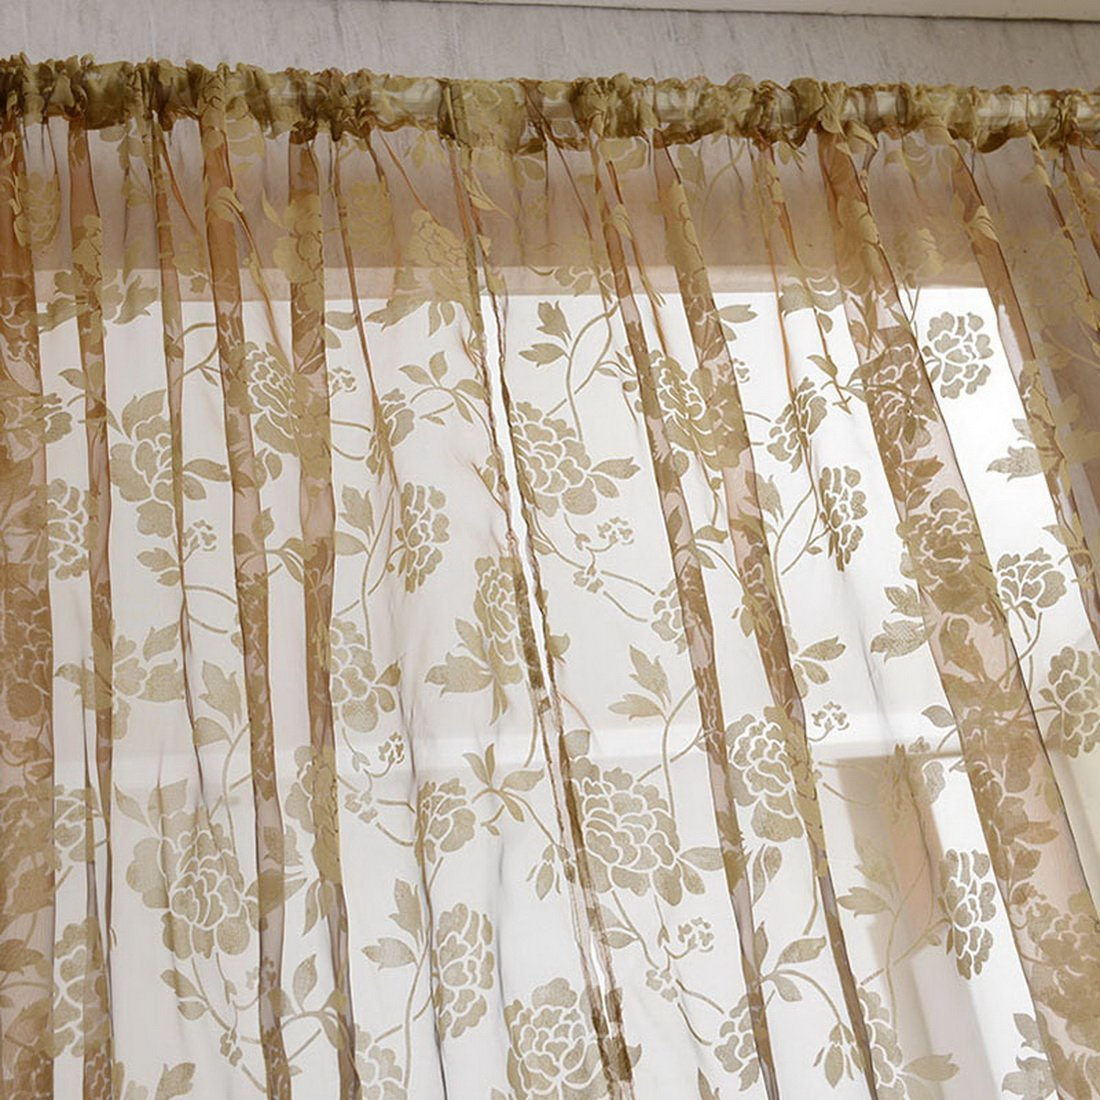 Hoomall Solid Sheer Window Curtains Drape Panels Window Treatment Light Transmission Floral Embroidered 100x200cm 1 Panel Brown Ourstory